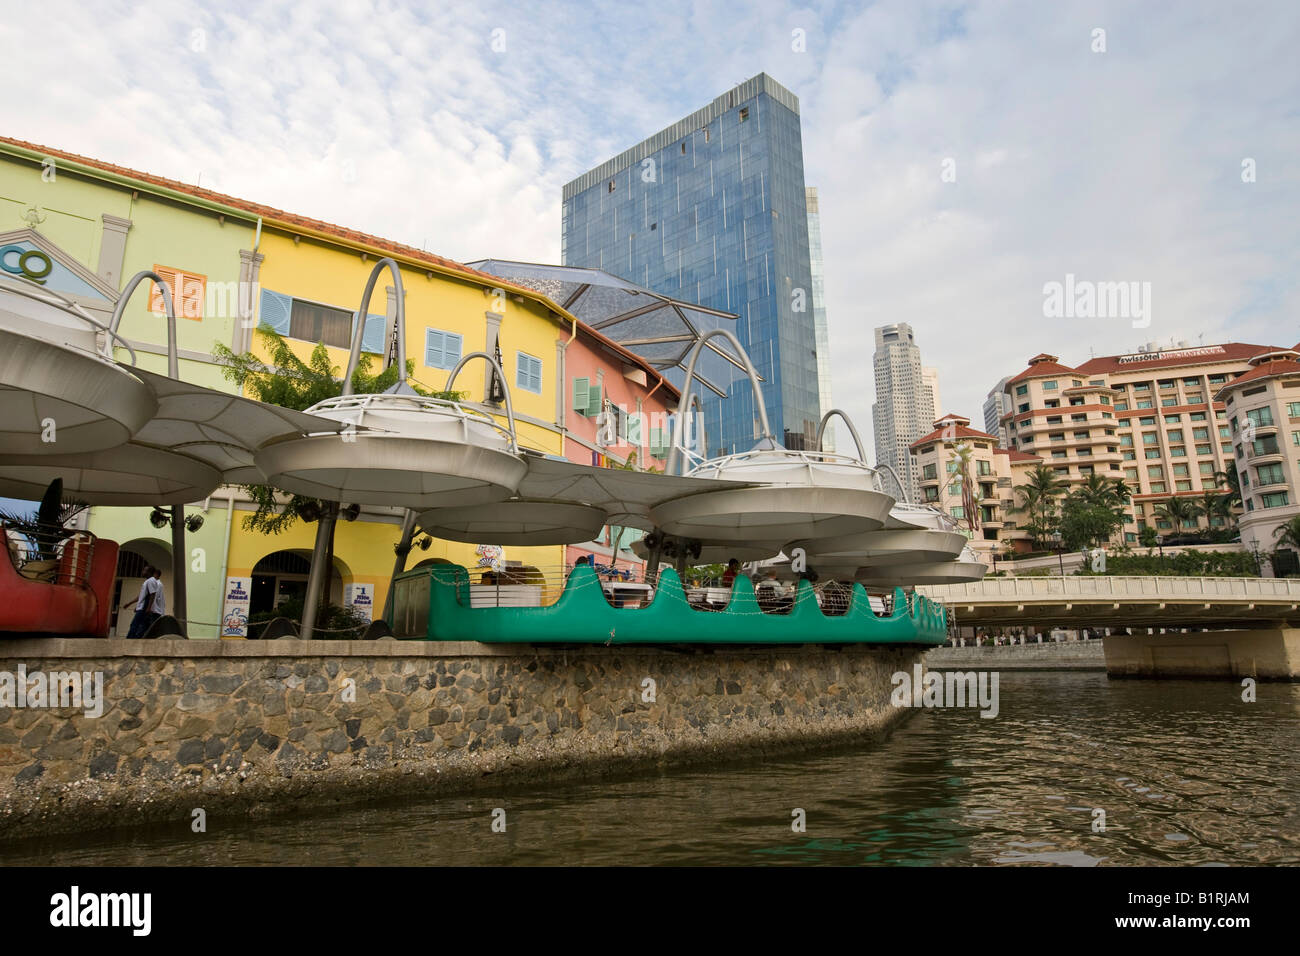 Restaurants in the location of former warehouses of the 19th century, area named after Andrew Clarke, Singapore - Stock Image